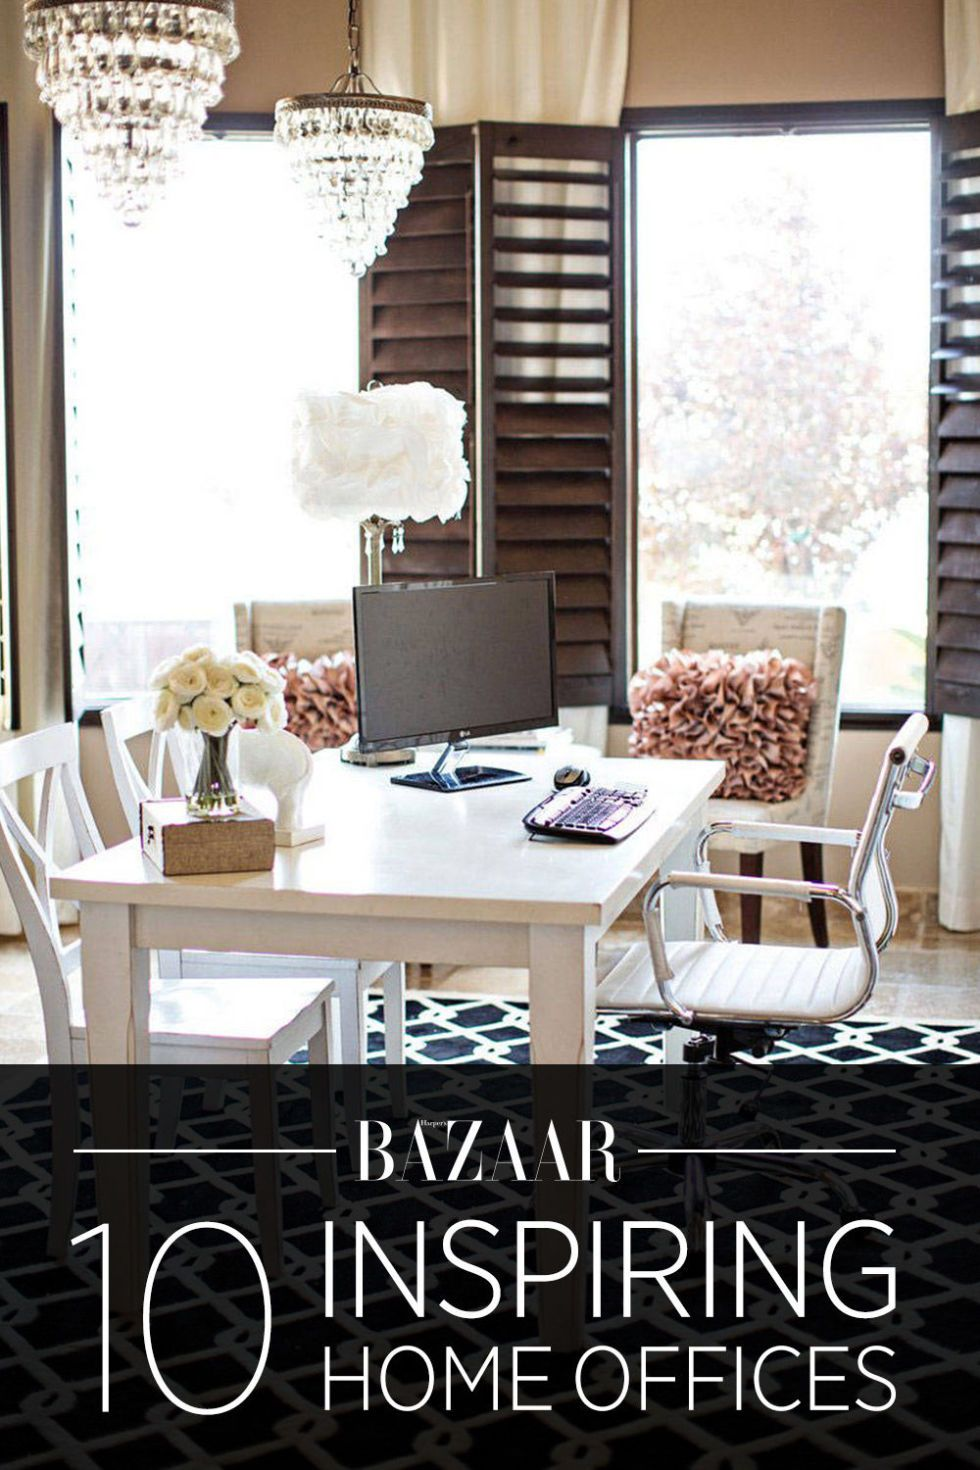 Save this article for later by pinning this image, and follow Harper's Bazaar on Pinterest for more.